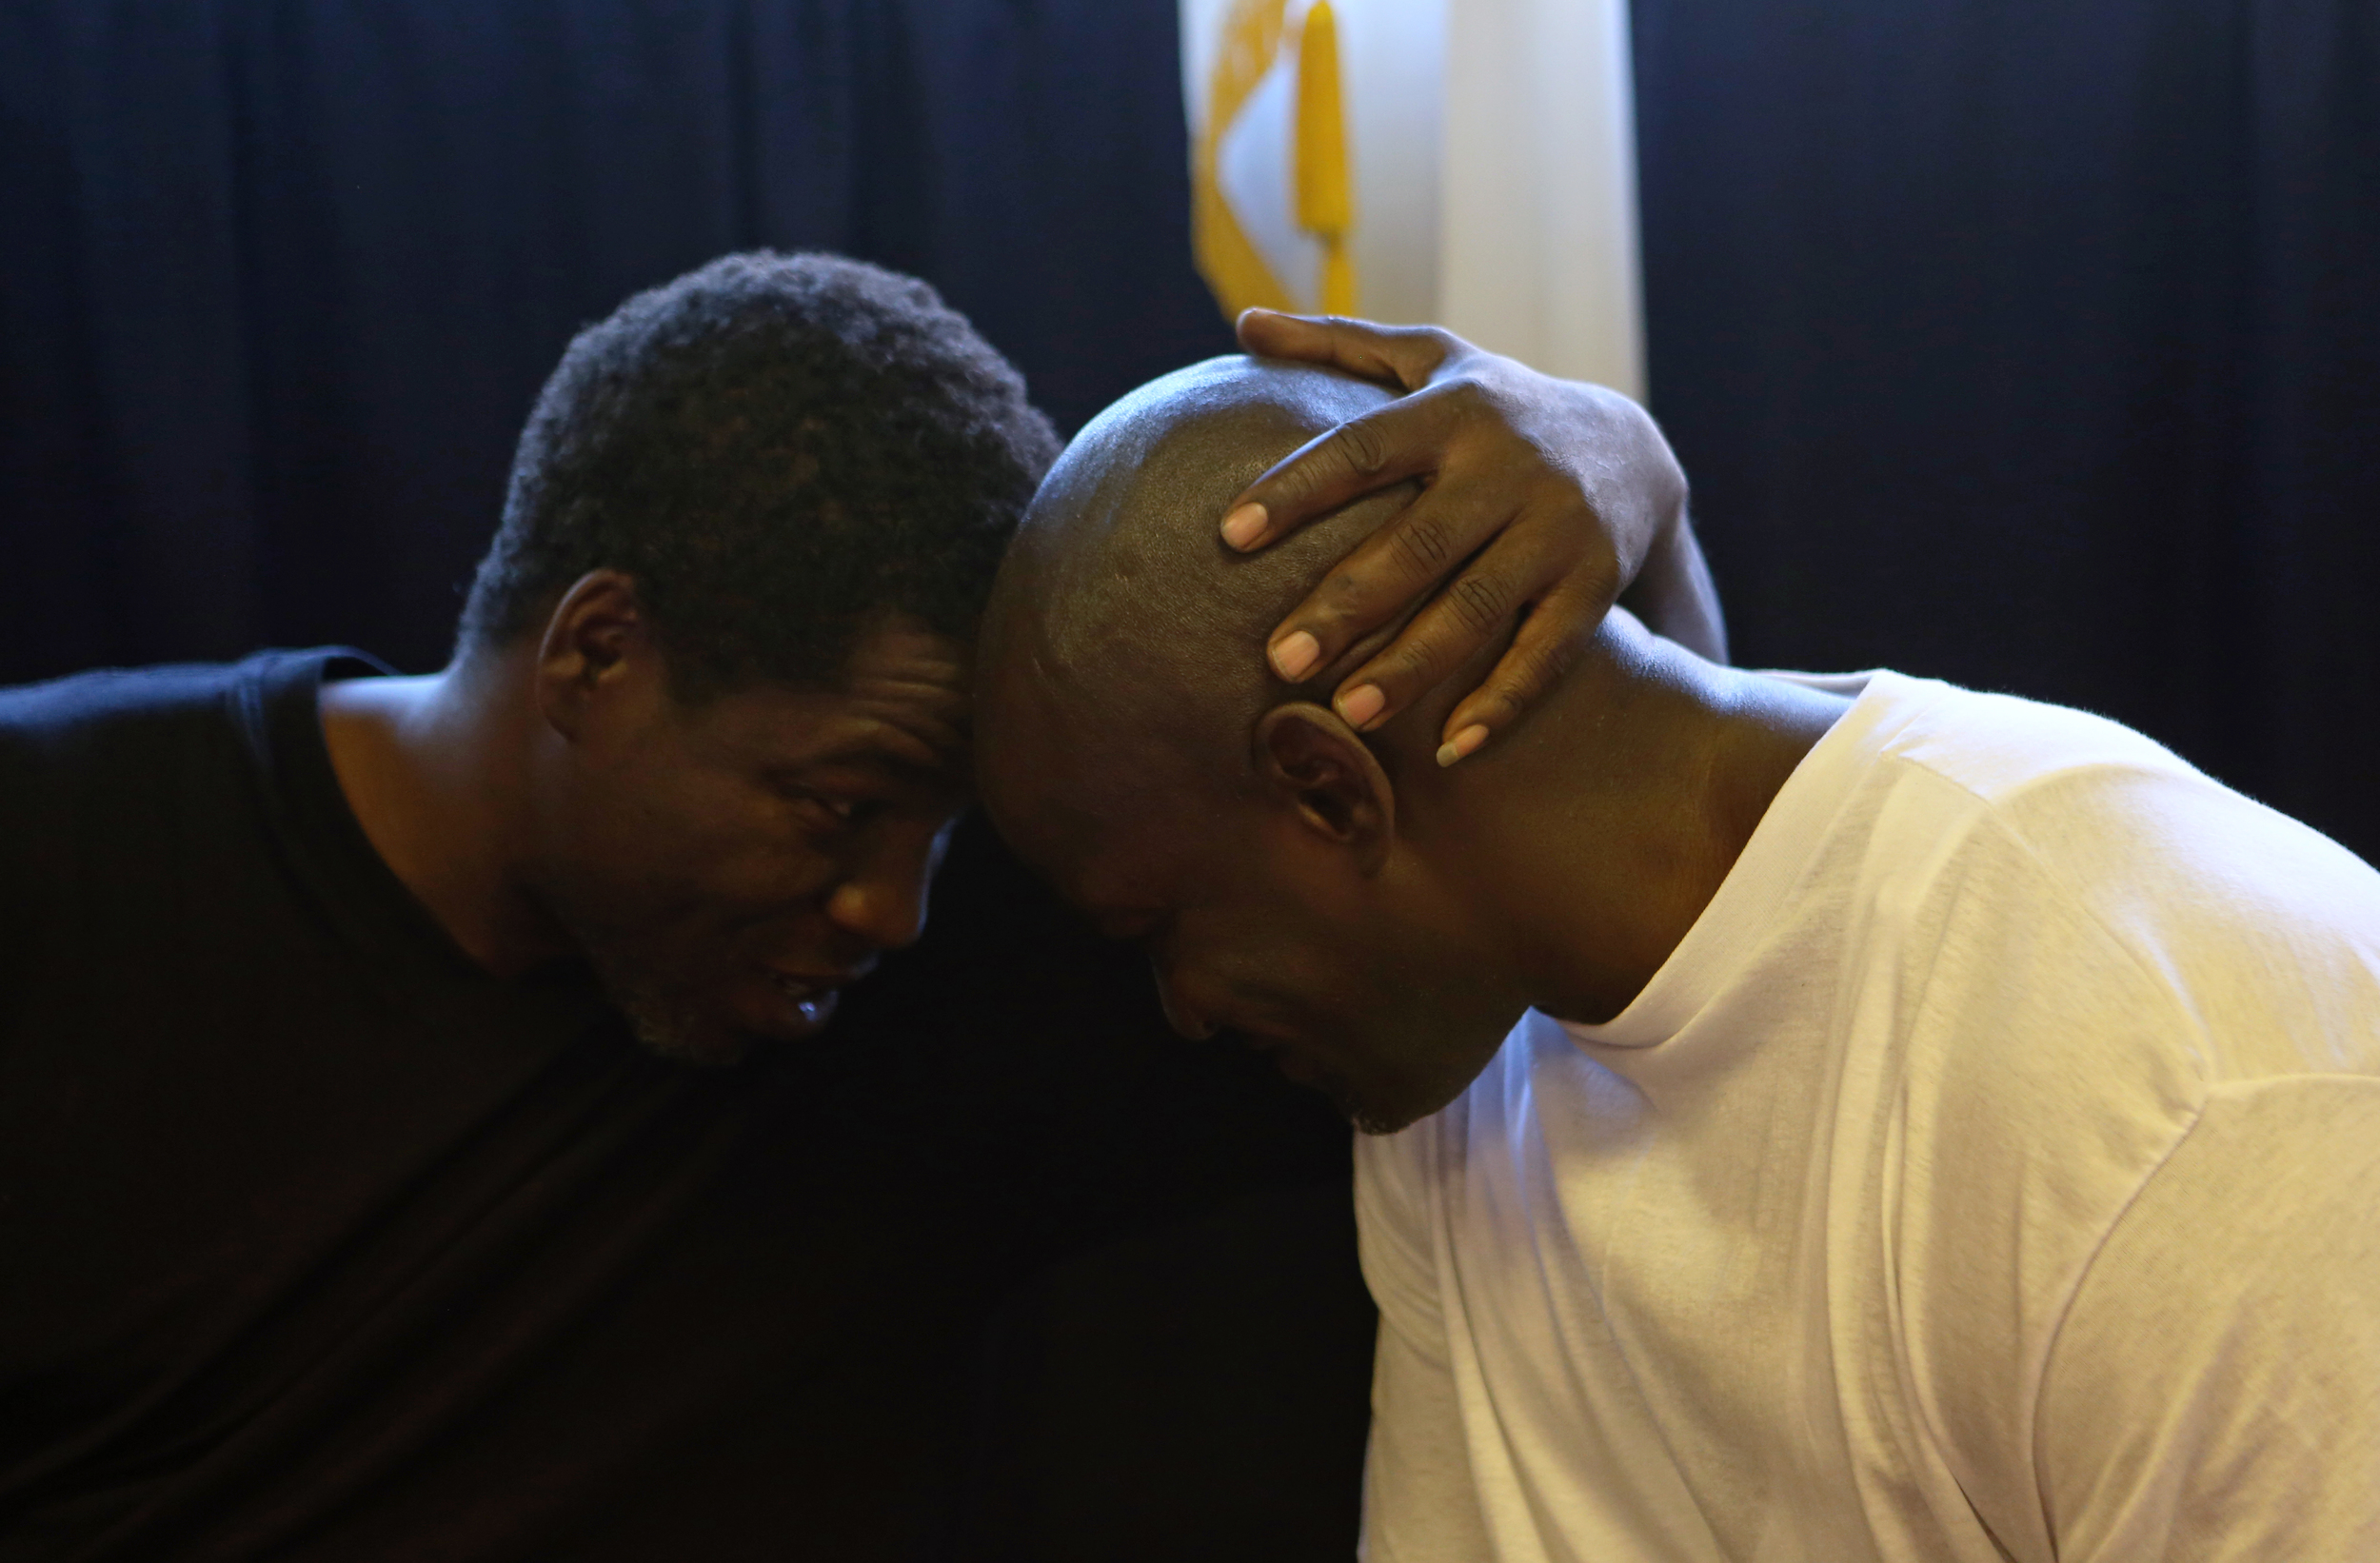 Daniel Taylor, right, shares a quiet moment with his brother, David while he eats his first meal out of prison at Jodie's Ol' Farmhouse Cafe & Bakery in Mernard, Ill. on Friday June 28, 2013. Daniel was wrongly convicted of murder nearly 20 years ago.